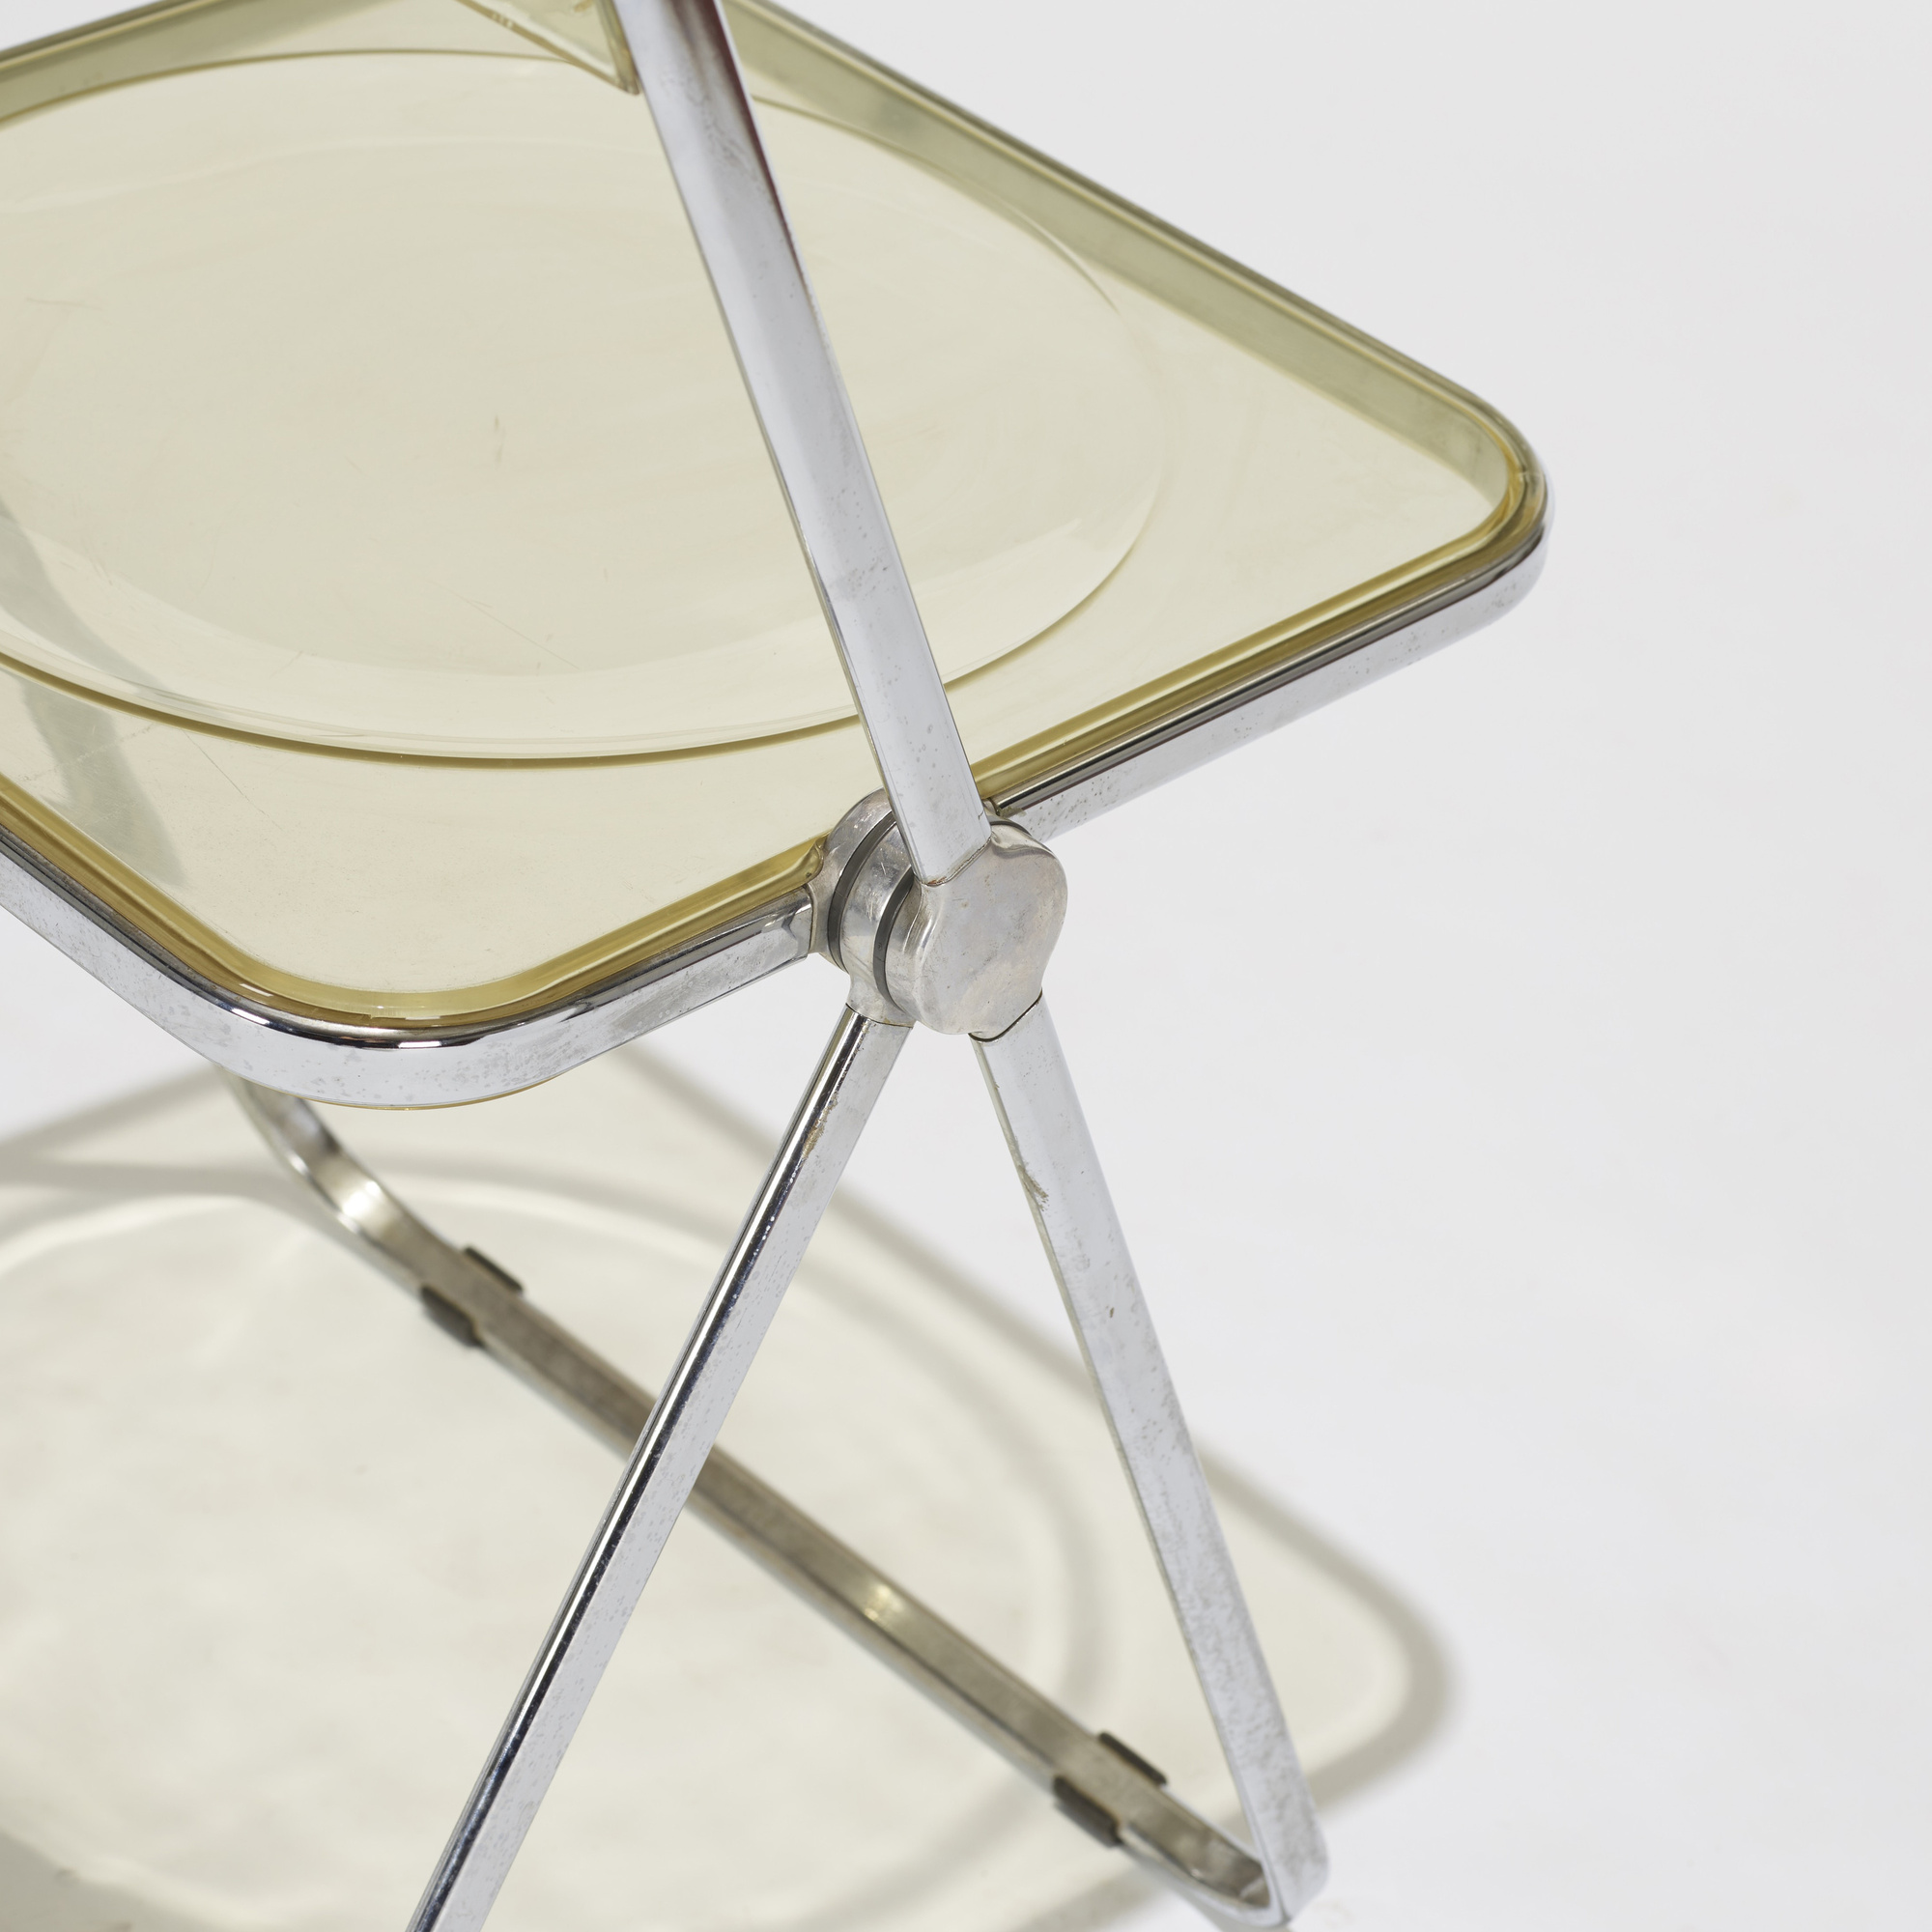 420: Giancarlo Piretti / Plia folding chair (3 of 3)